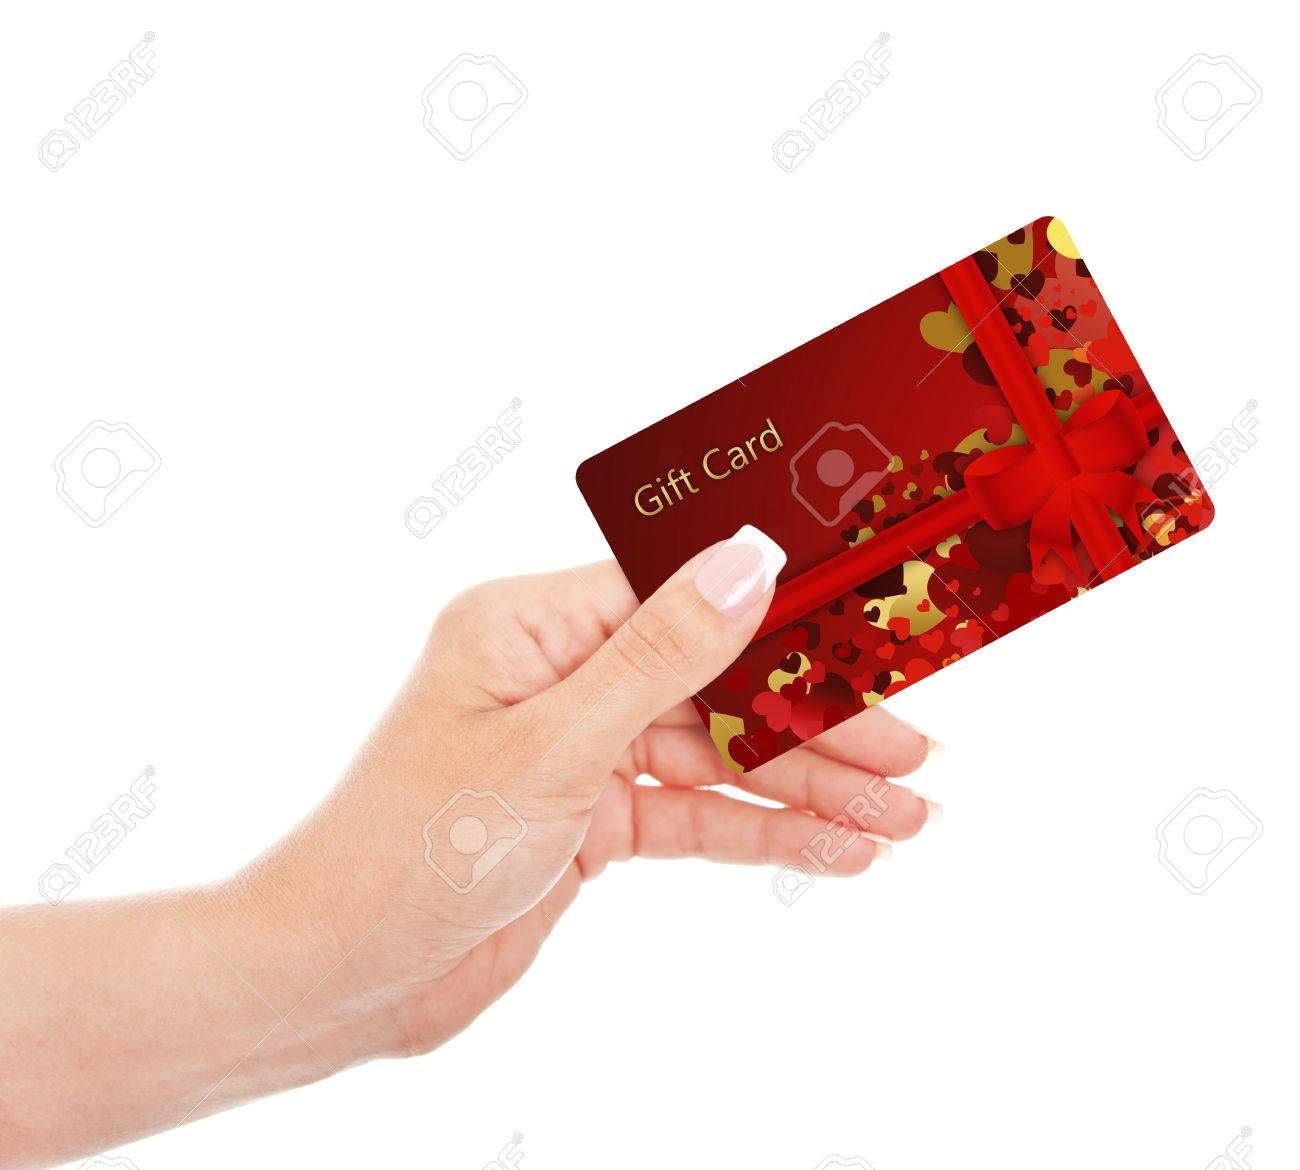 Hand holding gift card isolated over white background stock photo hand holding gift card isolated over white background stock photo 22428755 negle Gallery